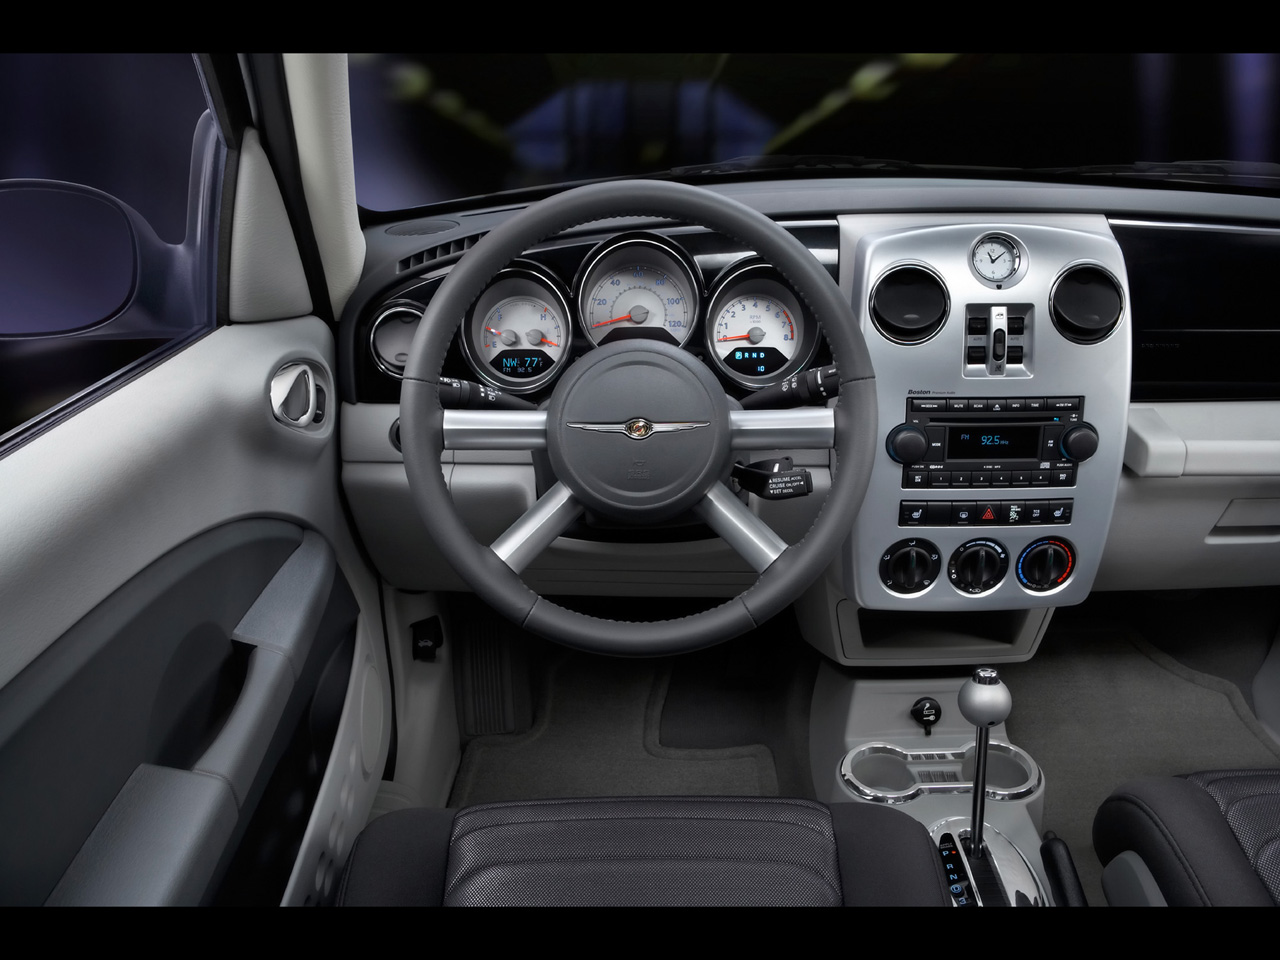 Chrysler Prowler interior #2